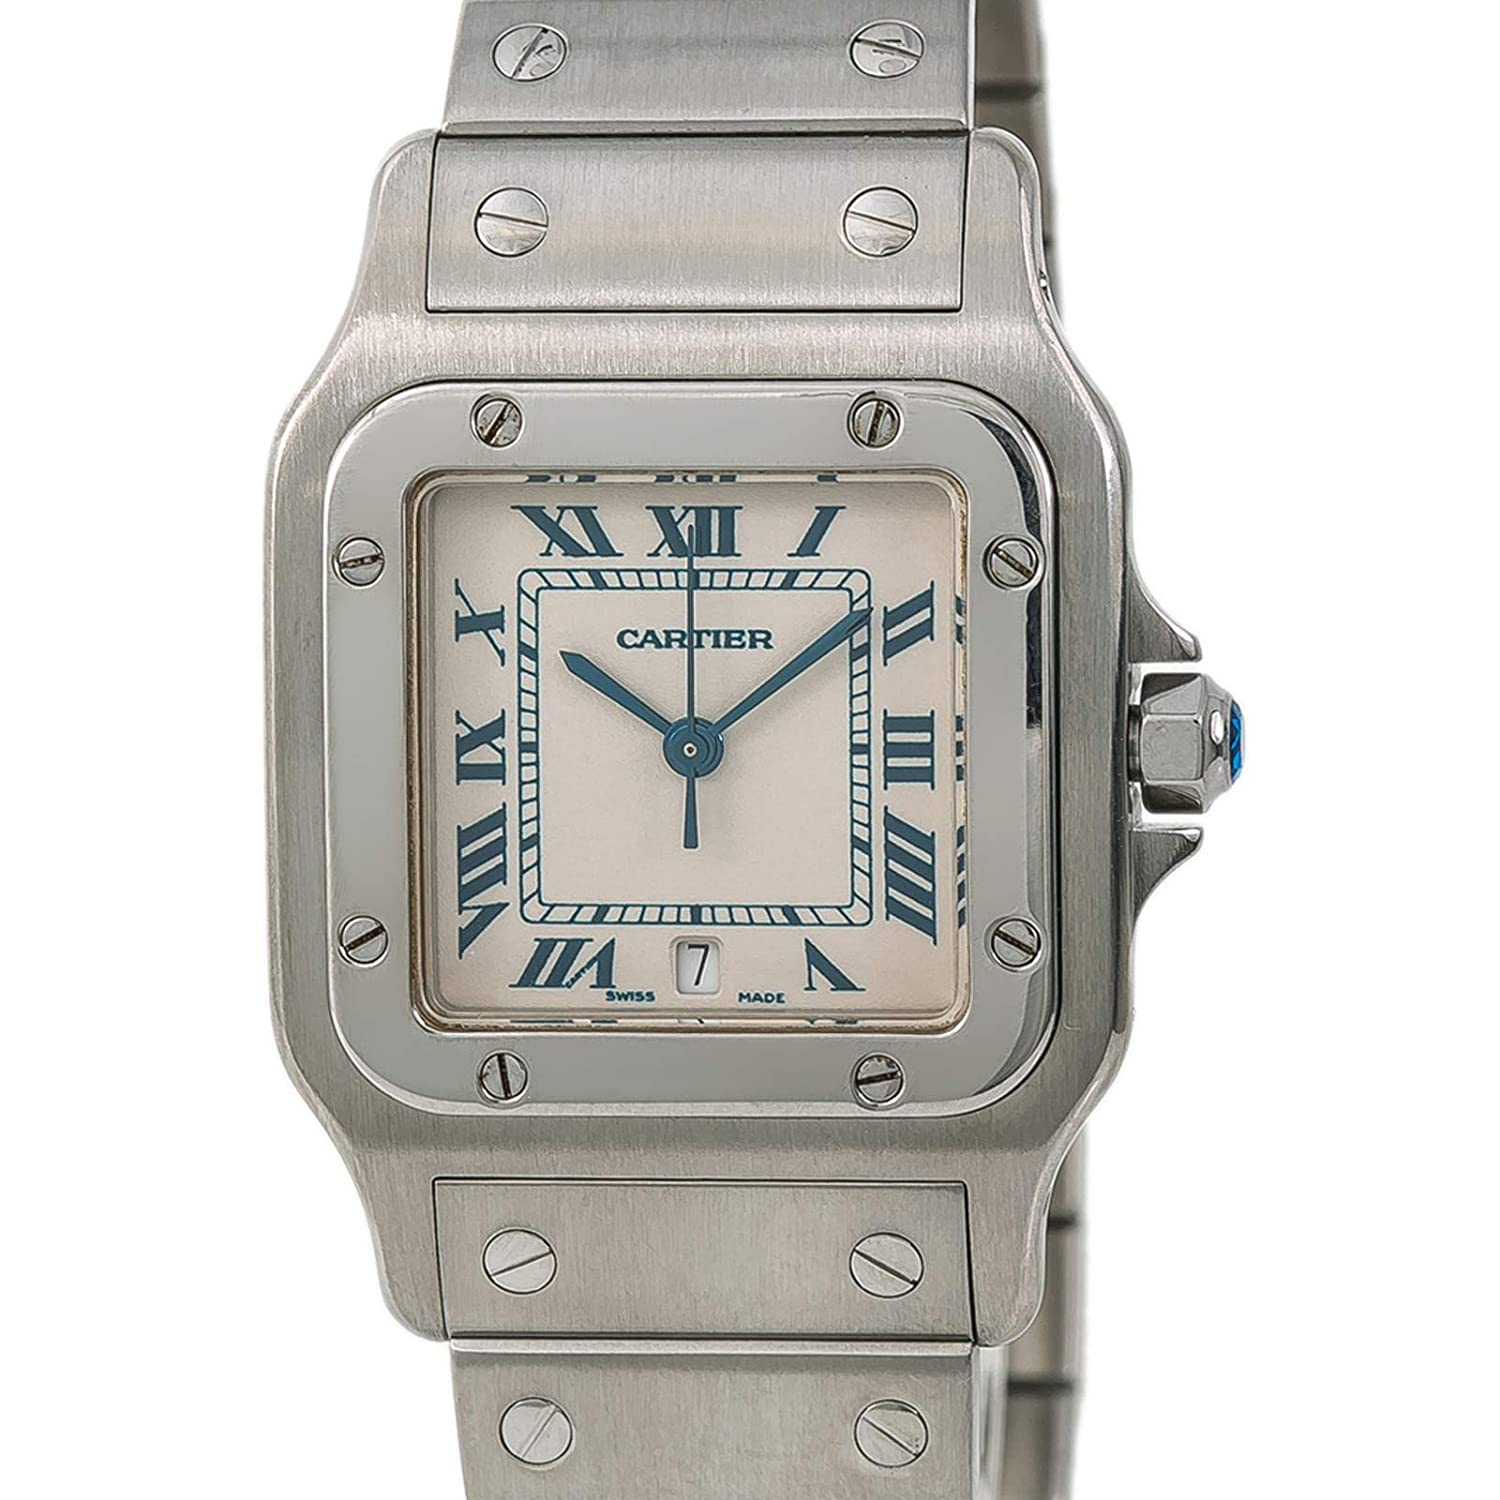 686dd639c2a5 Cartier Santos Galbee Quartz Male Watch 1564 (Certified Pre-Owned)  Cartier   Amazon.ca  Watches